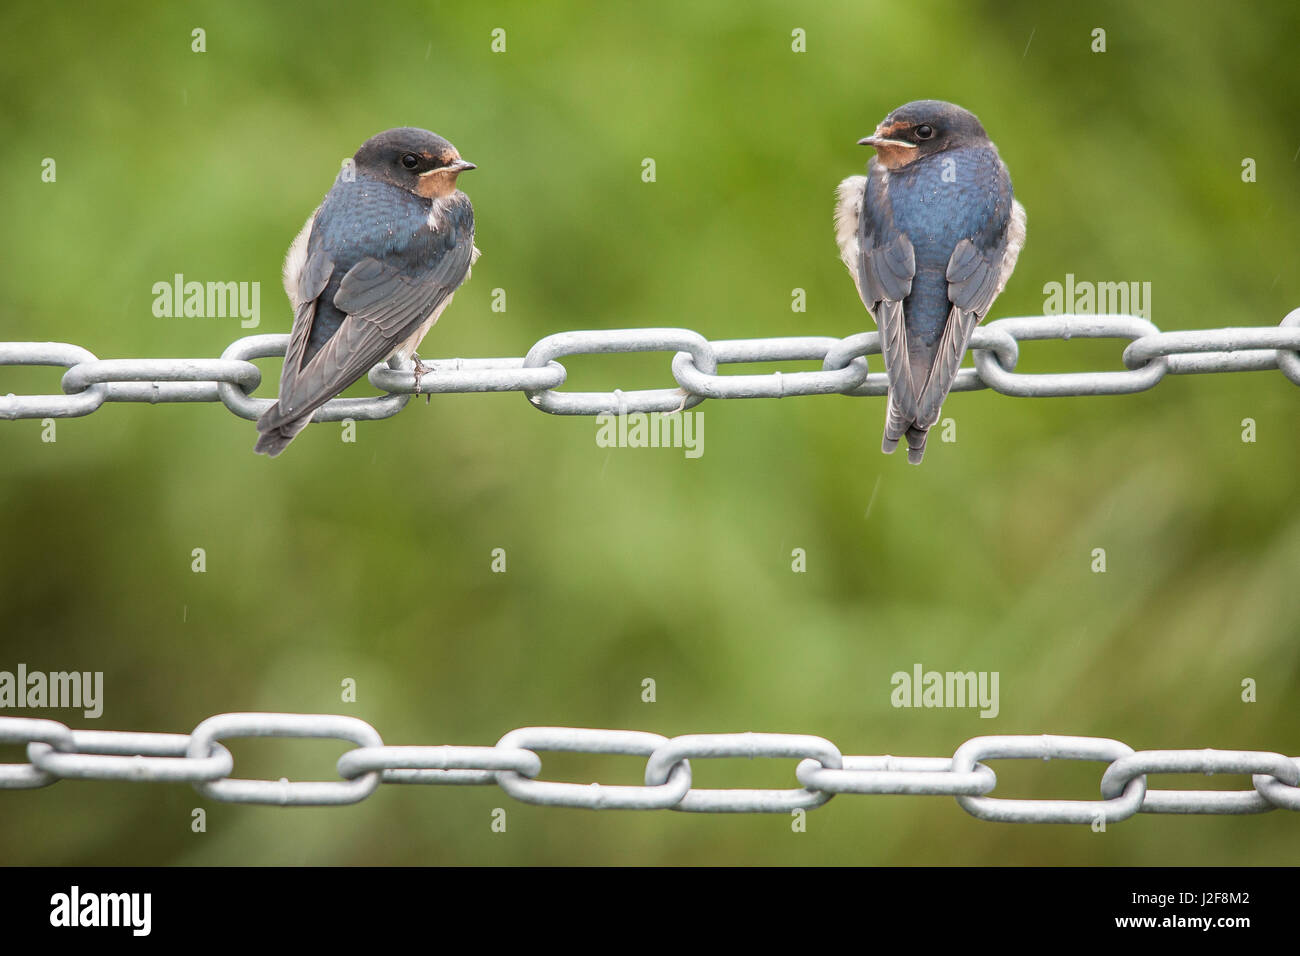 Backview of two juvenile Barn Swallows (Hirundo rustica) sitting on a chain - Stock Image